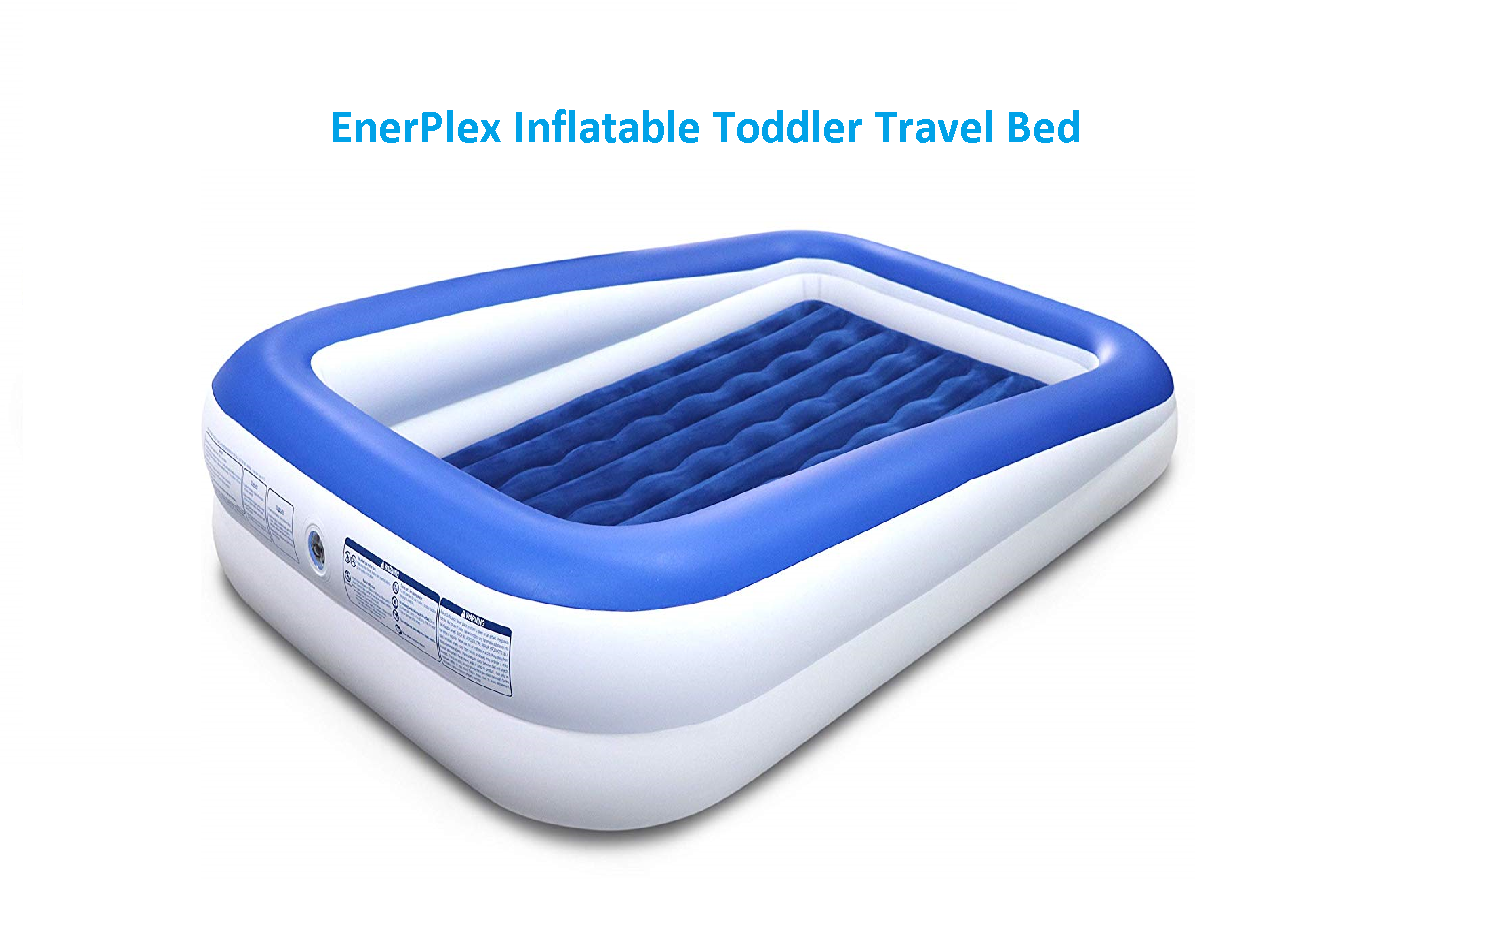 EnerPlex Inflatable Toddler Travel Bed